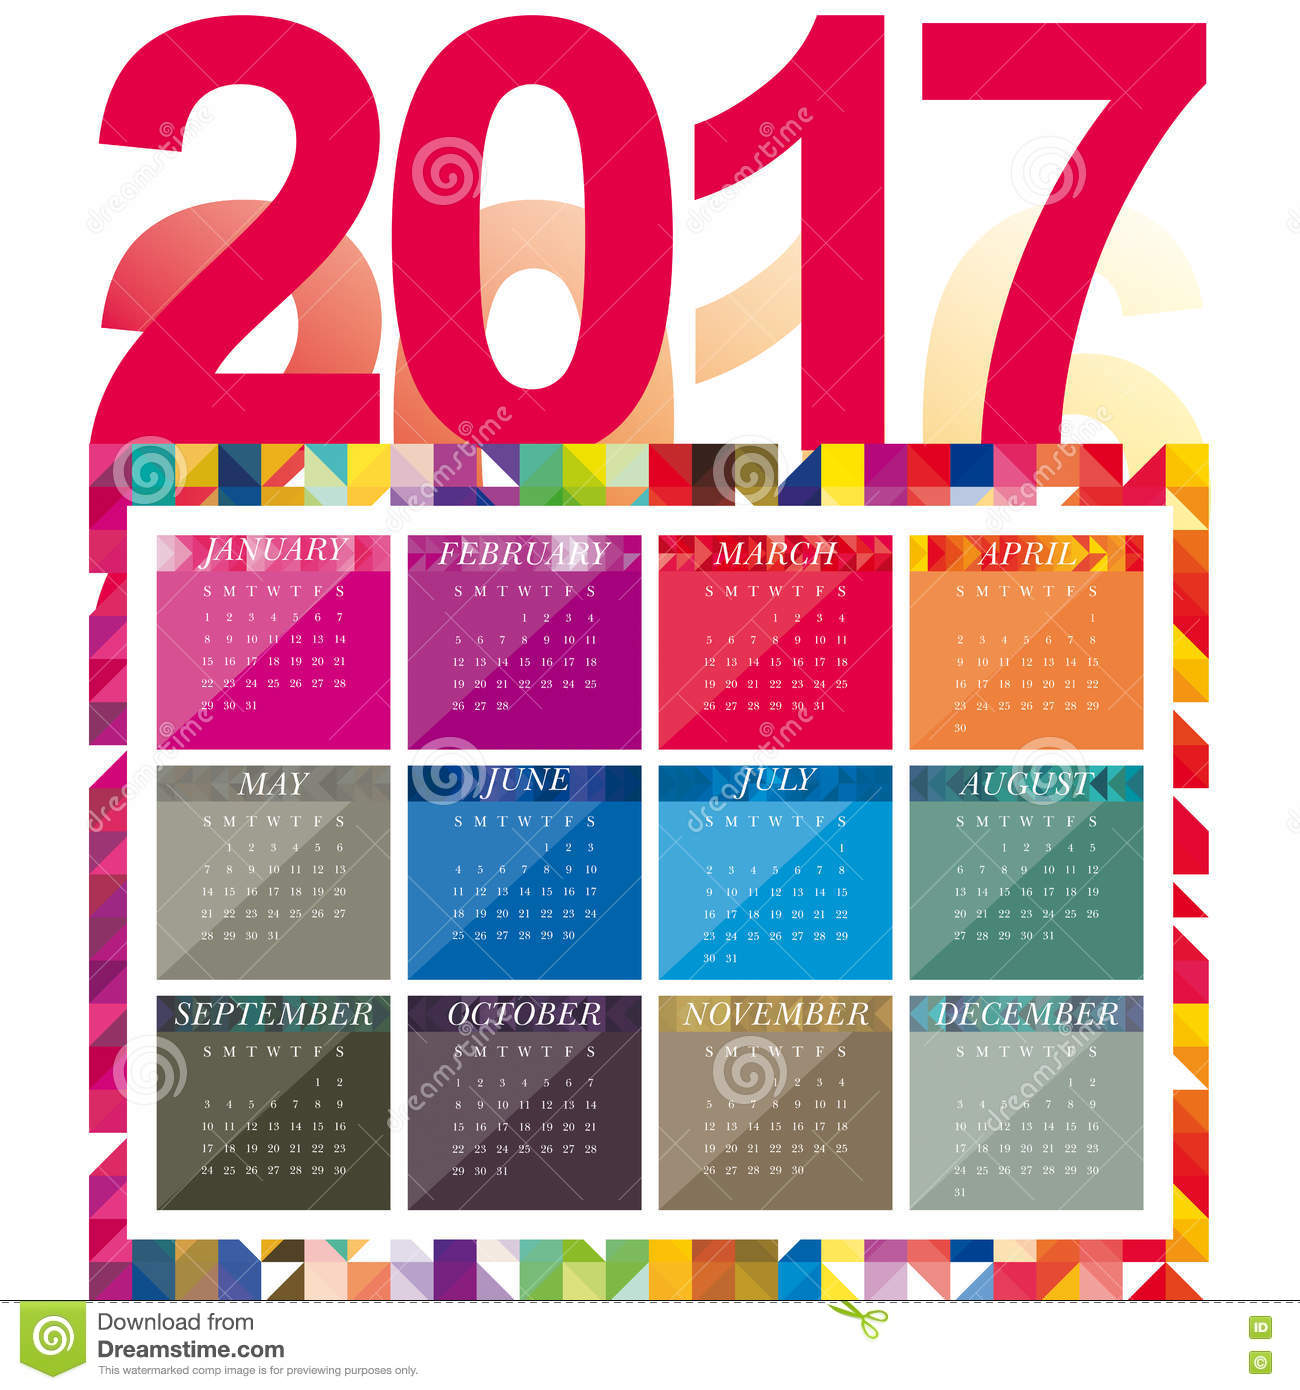 New Year Calendar Designs : Calendar design stock illustration image